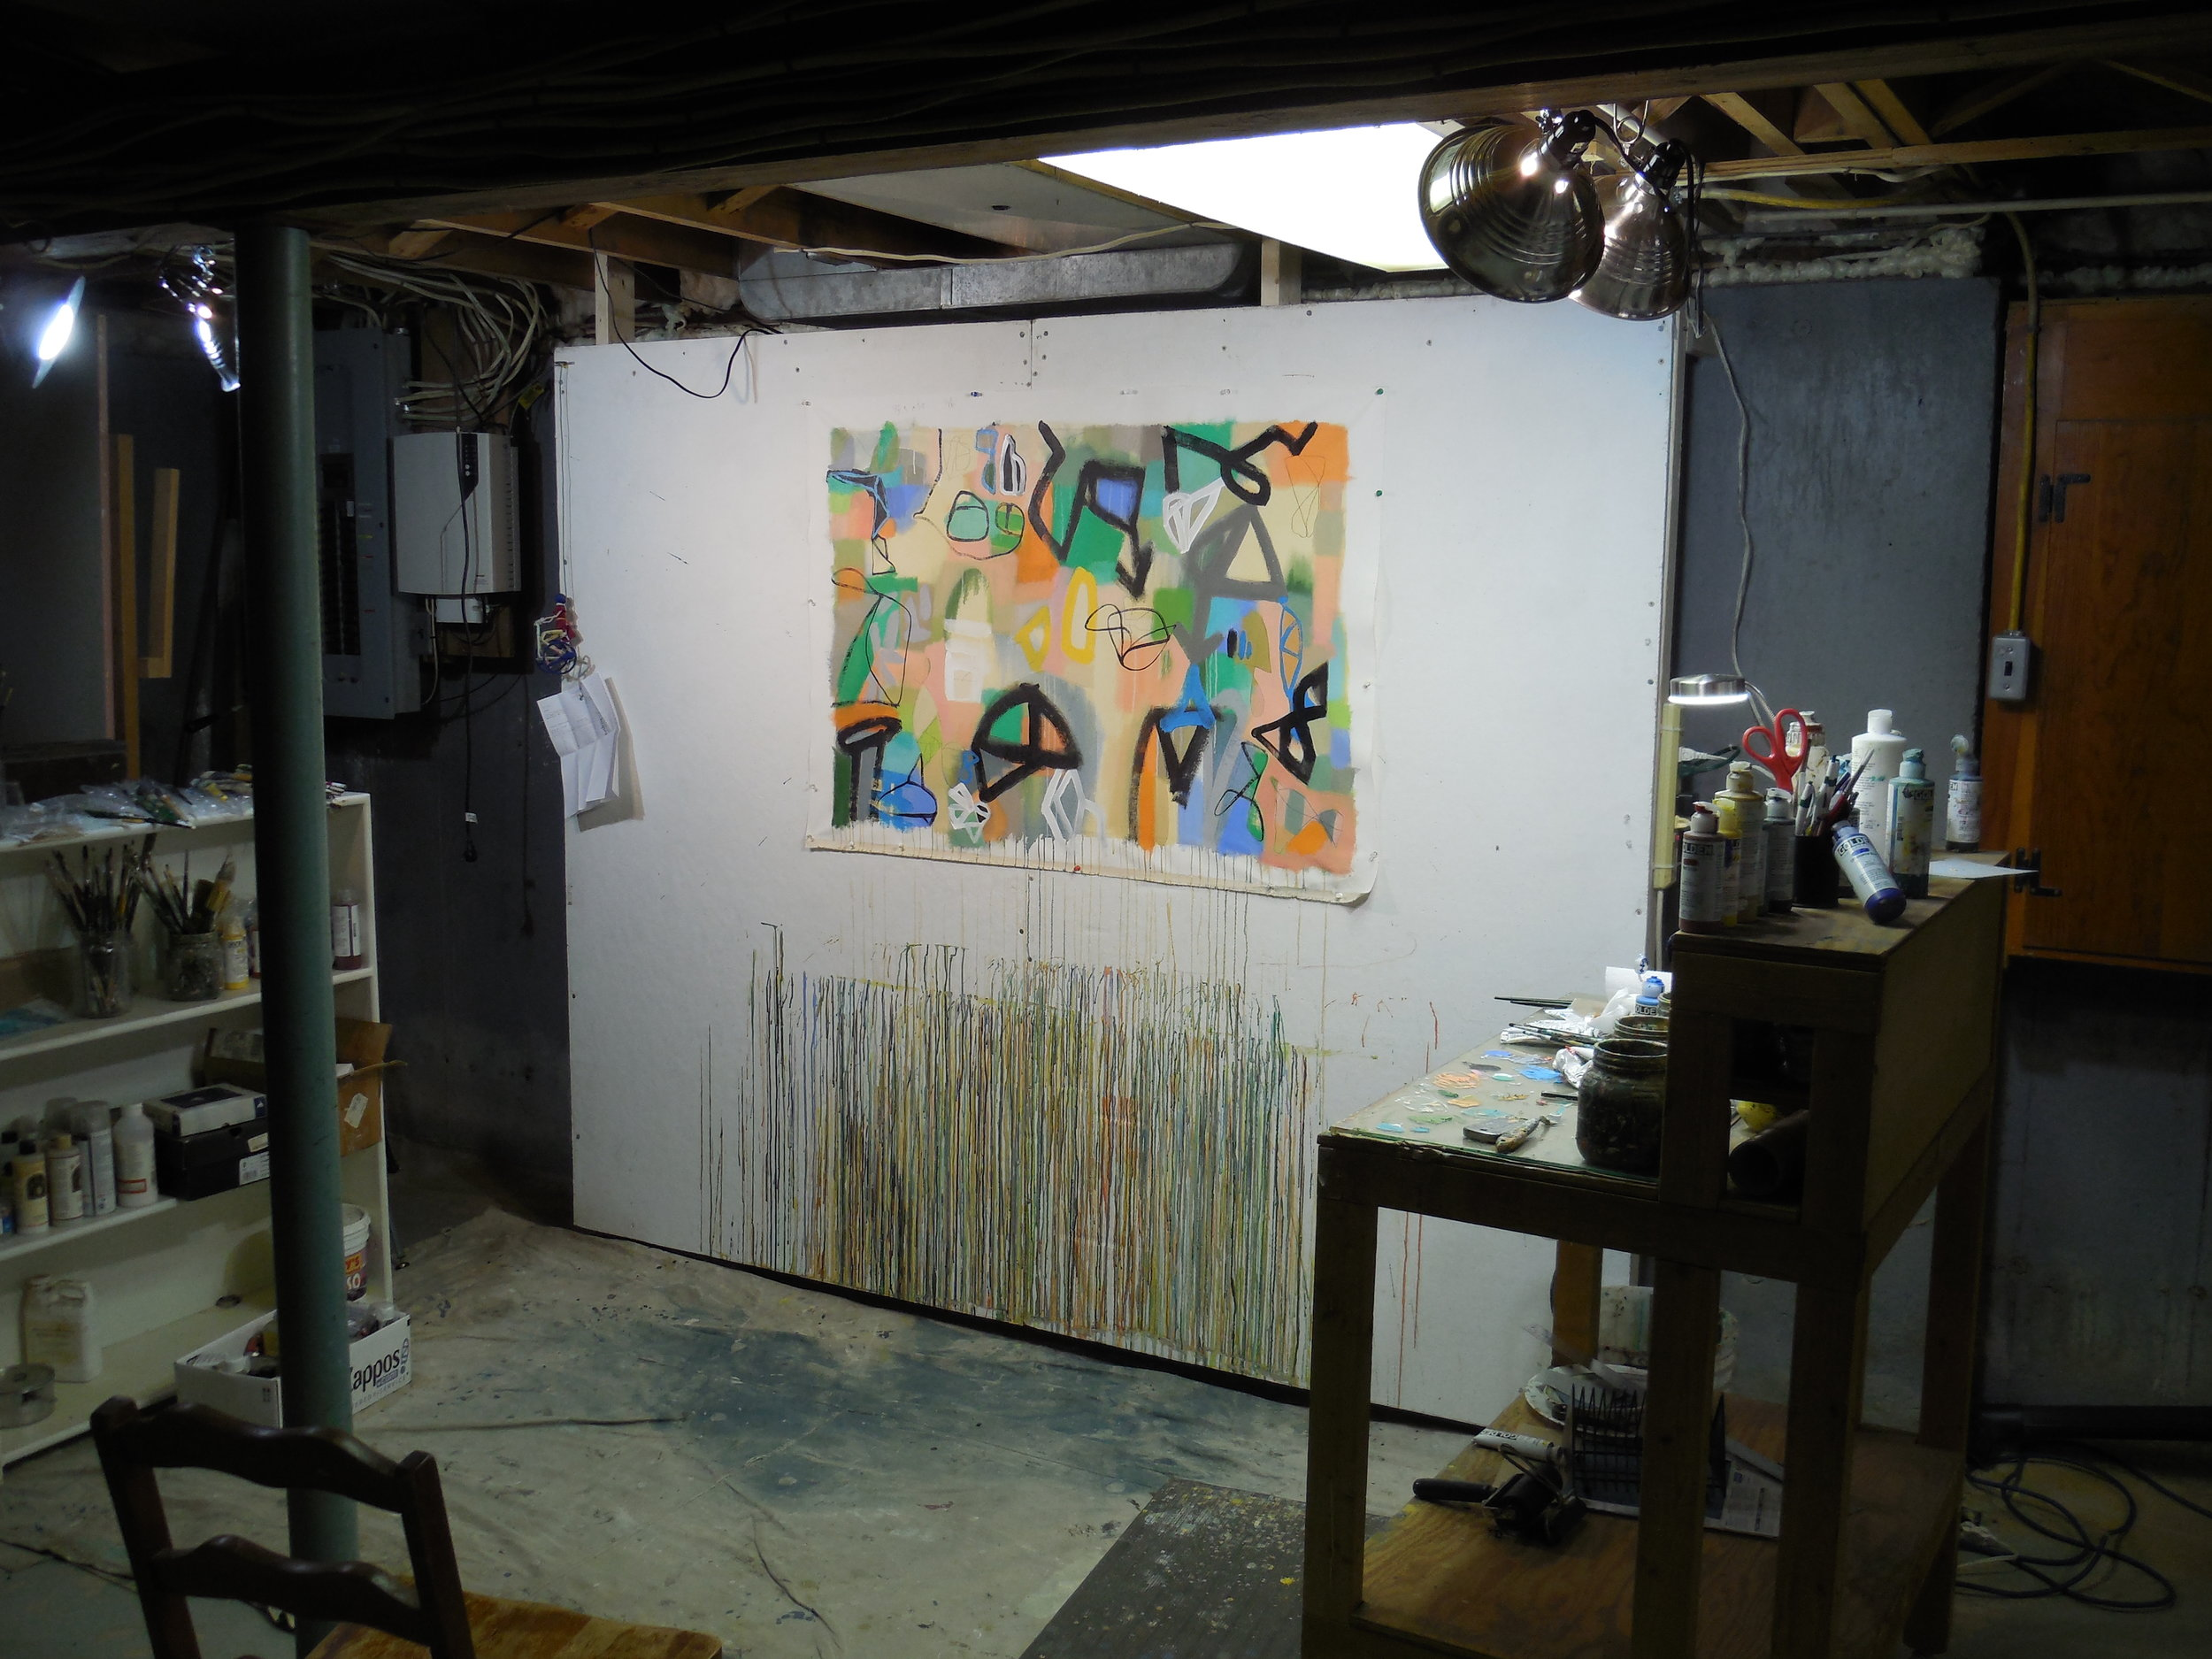 My present studio in Chelmsford, MA. I have since painted the pole bright stripes.